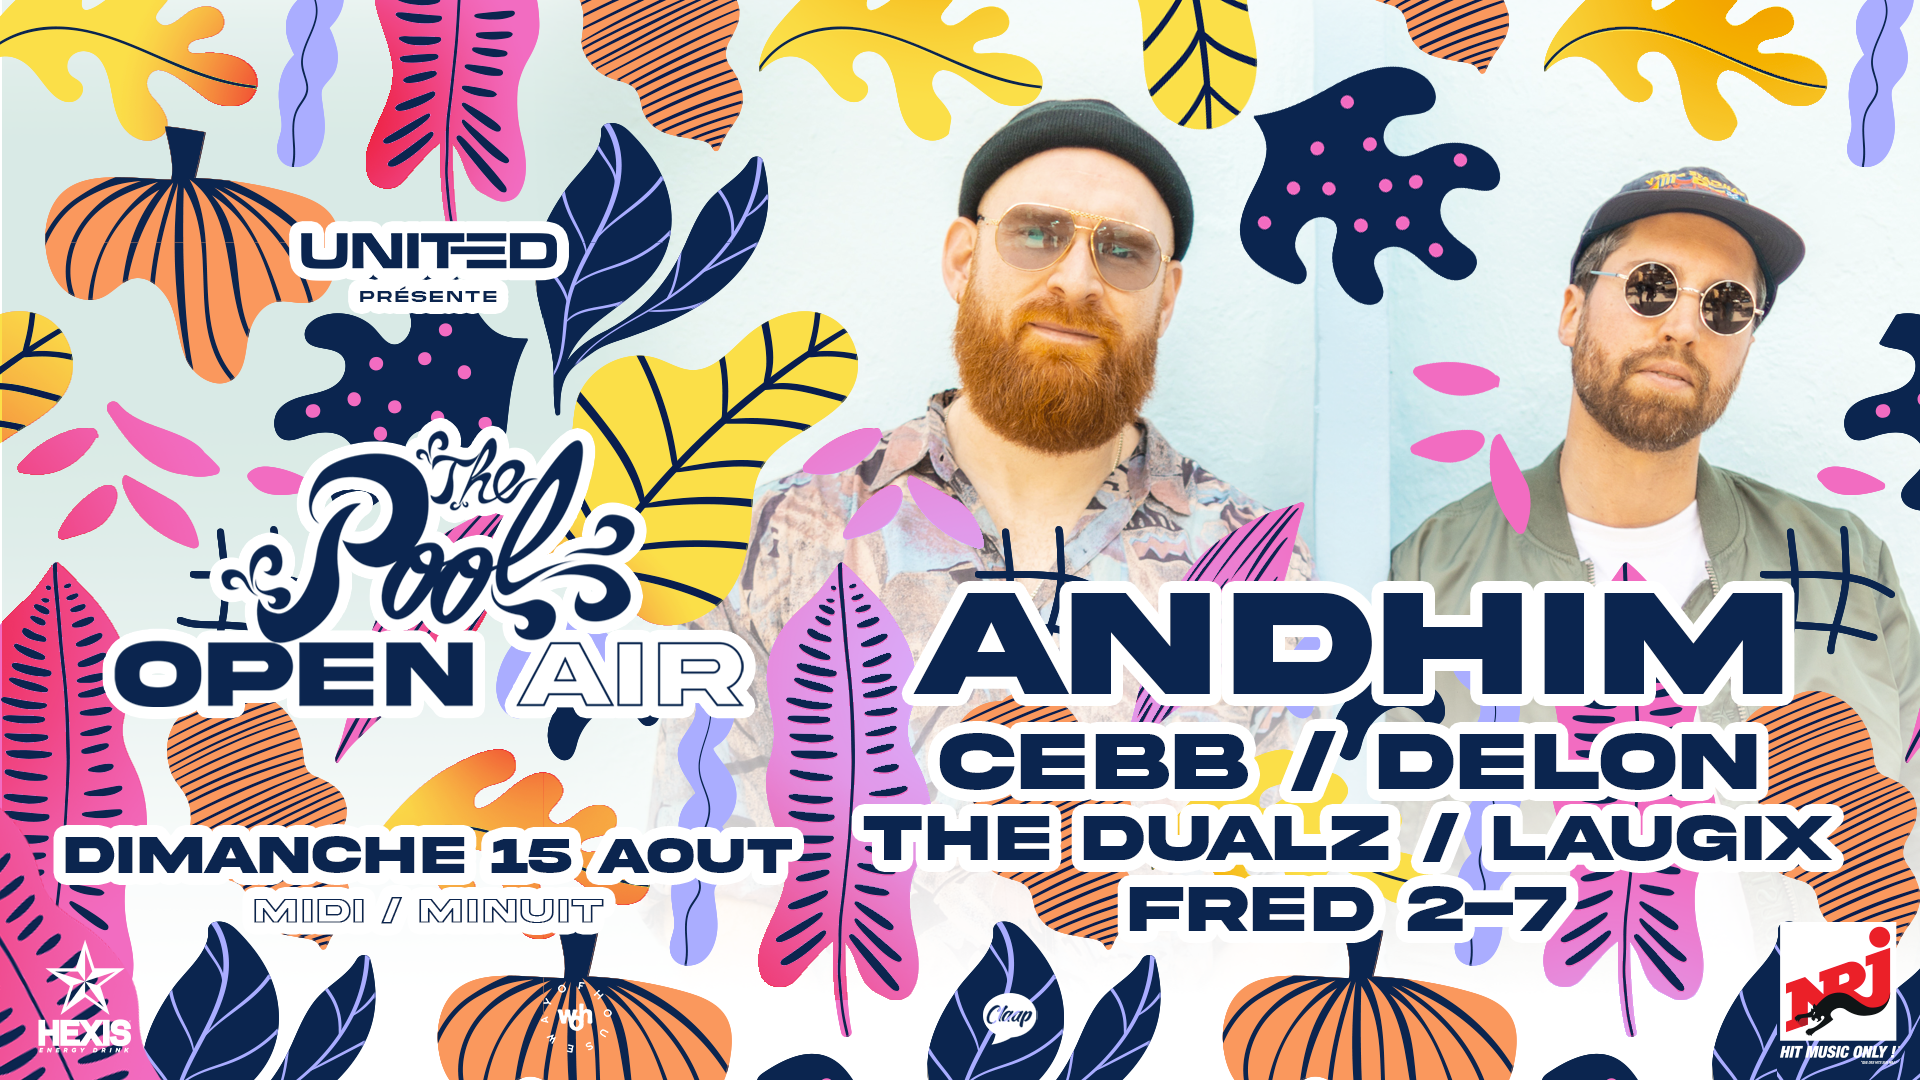 The Pool Open Air : ANDHIM 15/08